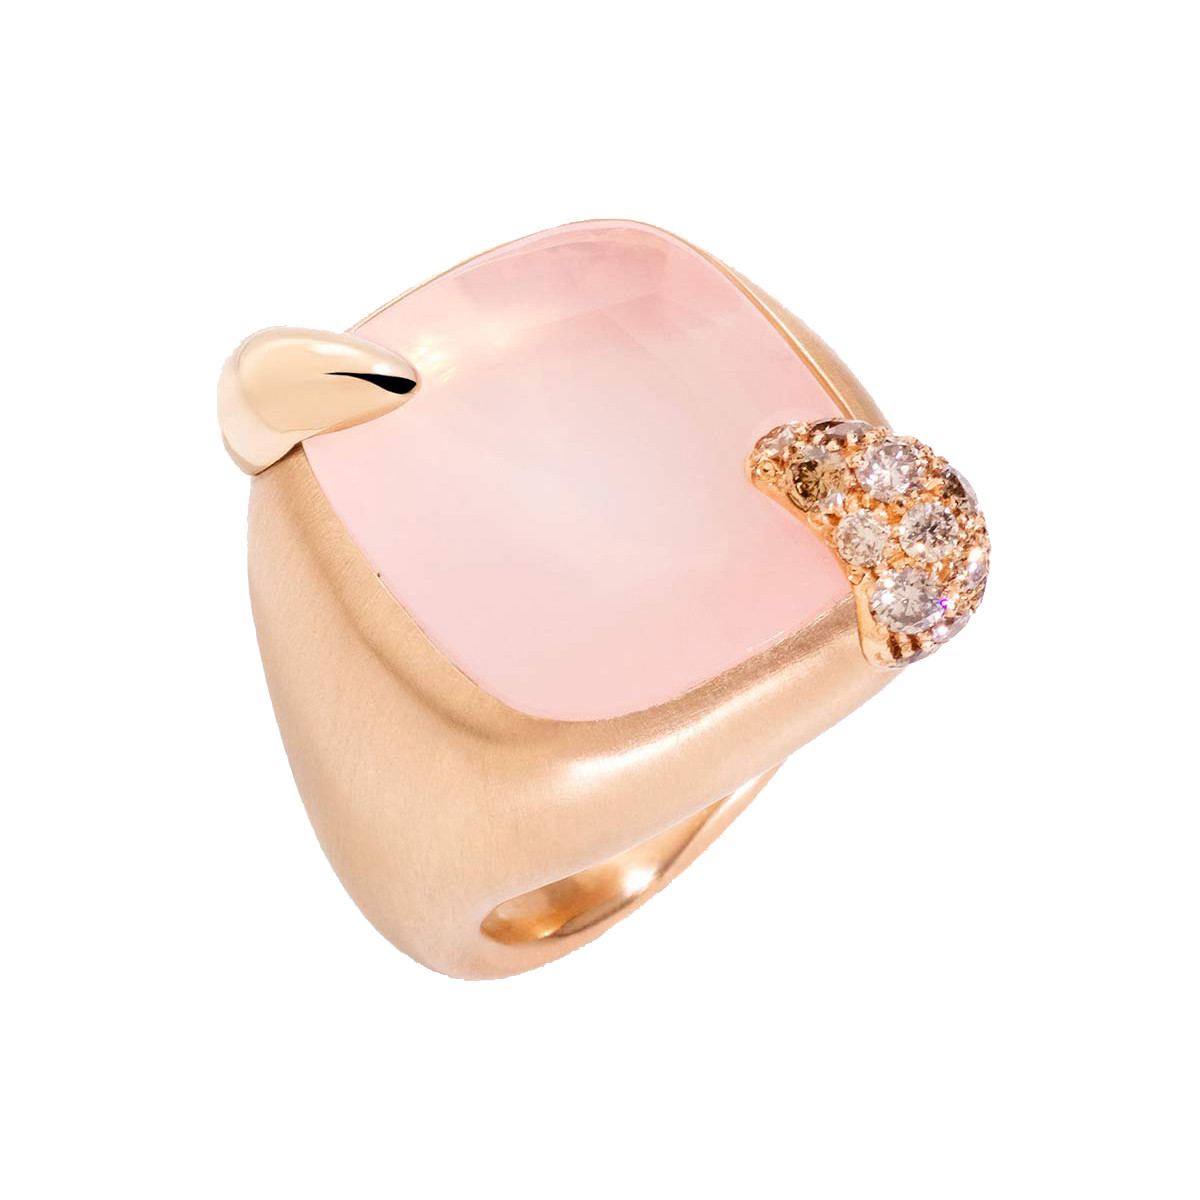 "Medium Pink Quartz ""Ritratto"" Ring"